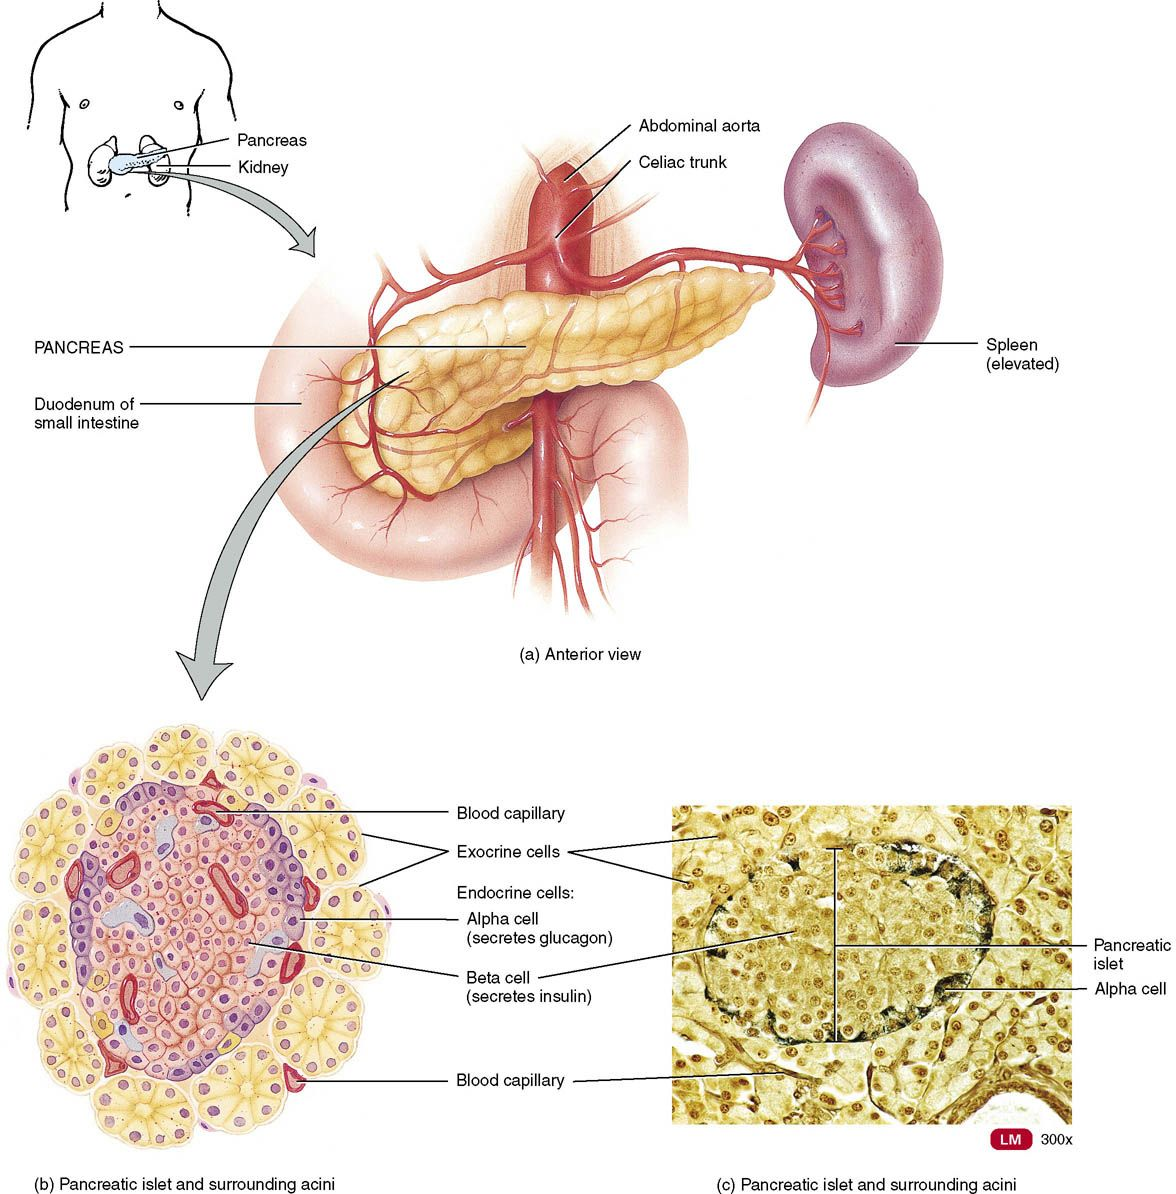 Anatomy and physiology the endocrine system | Anatomy, Physiology ...